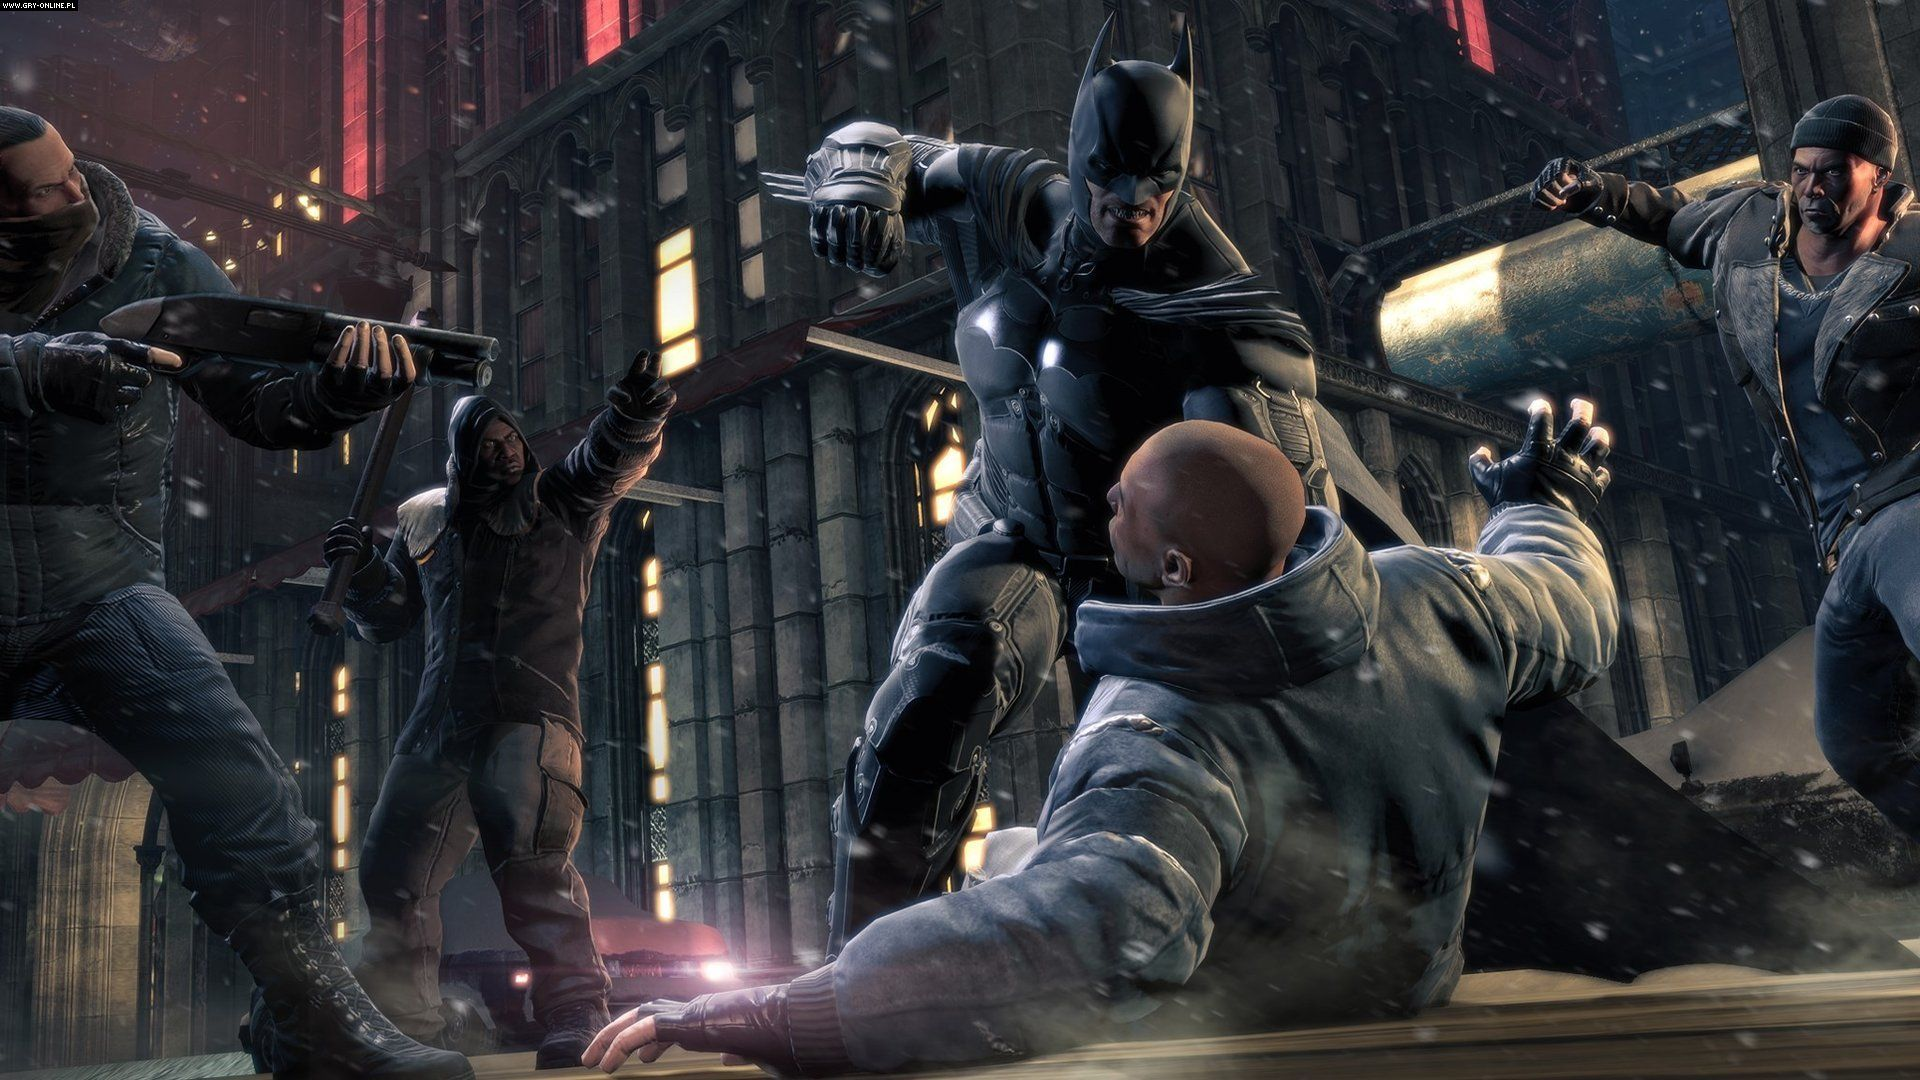 Batman: Arkham Origins PC, X360, PS3 Games Image 26/55, WB Games Montreal, Warner Bros Interactive Entertainment